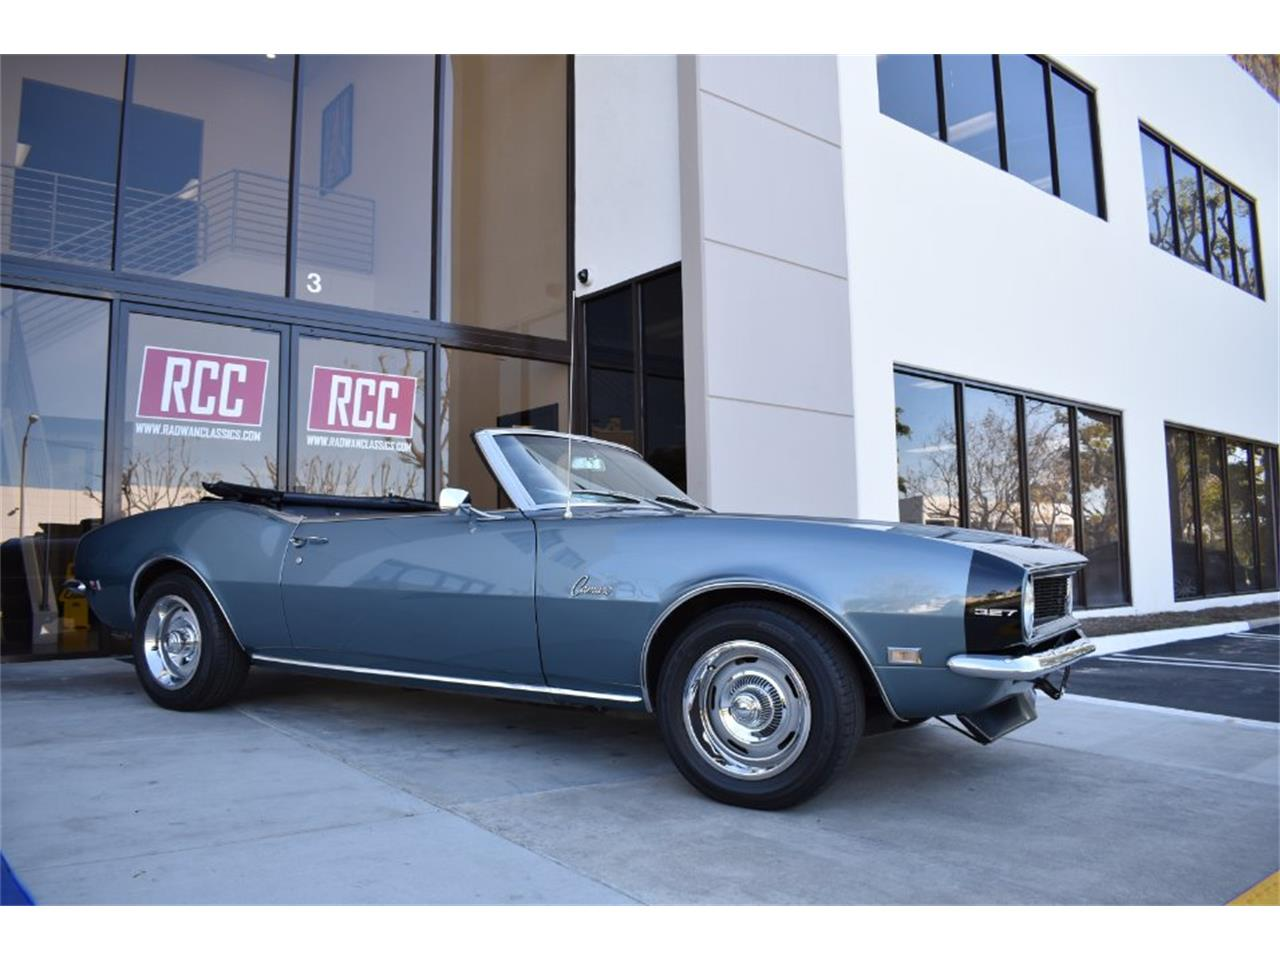 Large Picture of 1968 Chevrolet Camaro located in Irvine California - $47,900.00 Offered by Radwan Classic Cars - MO9U